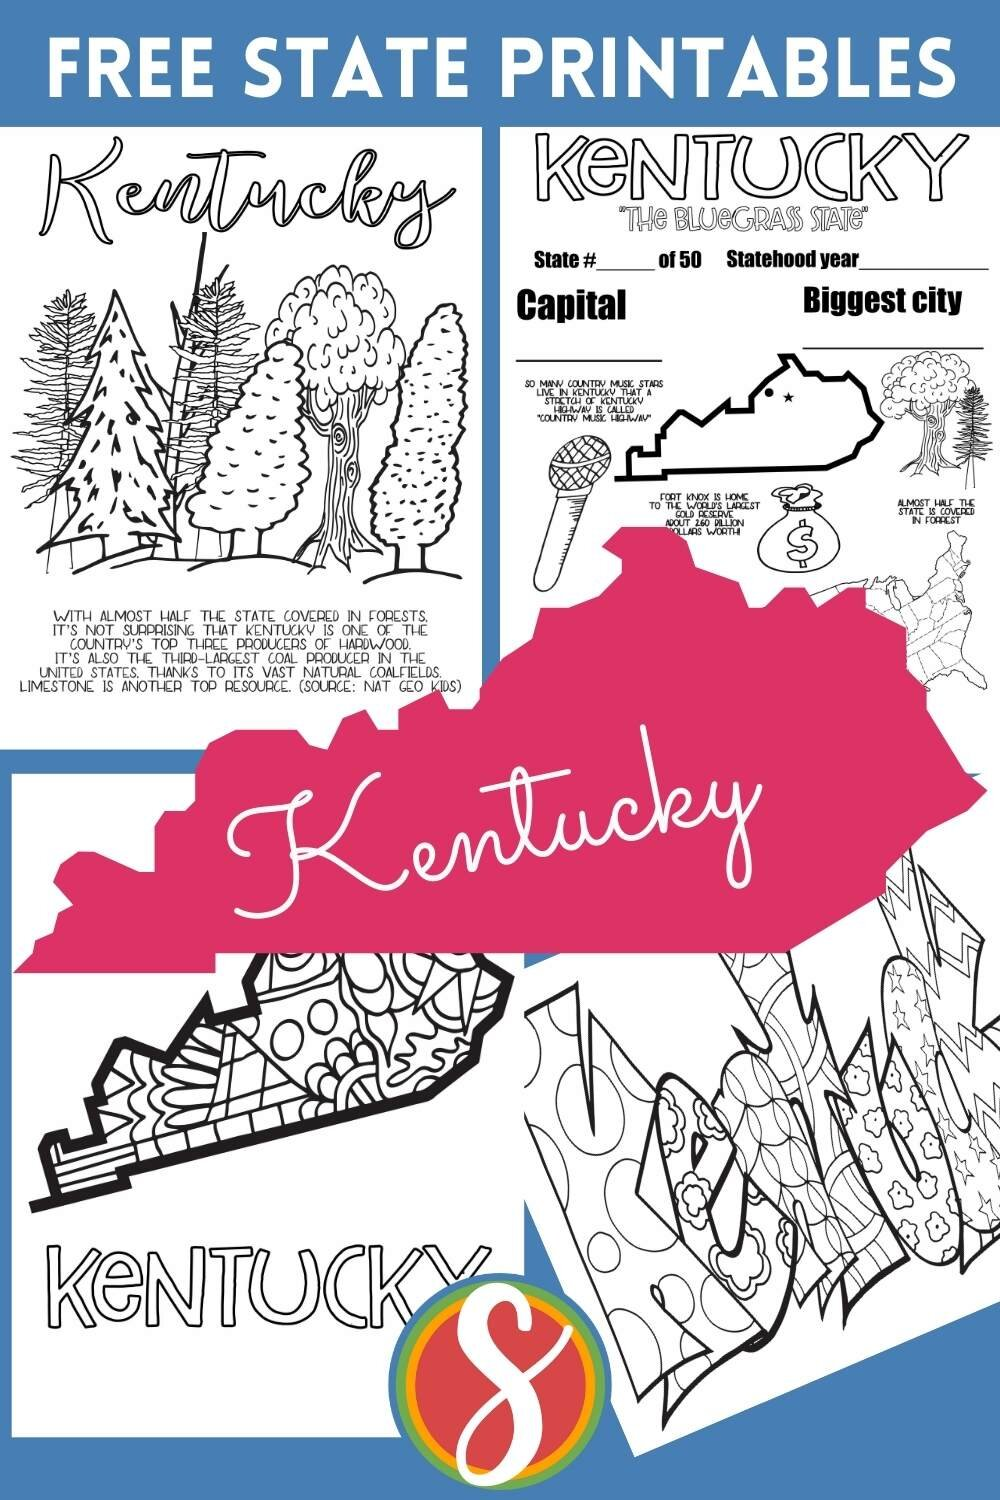 Free! These U.S. states printable coloring sheets from Stevie Doodles are free to print and color. Please enjoy 4 pages for each state + browse 1000's of free coloring pages from Stevie Doodles